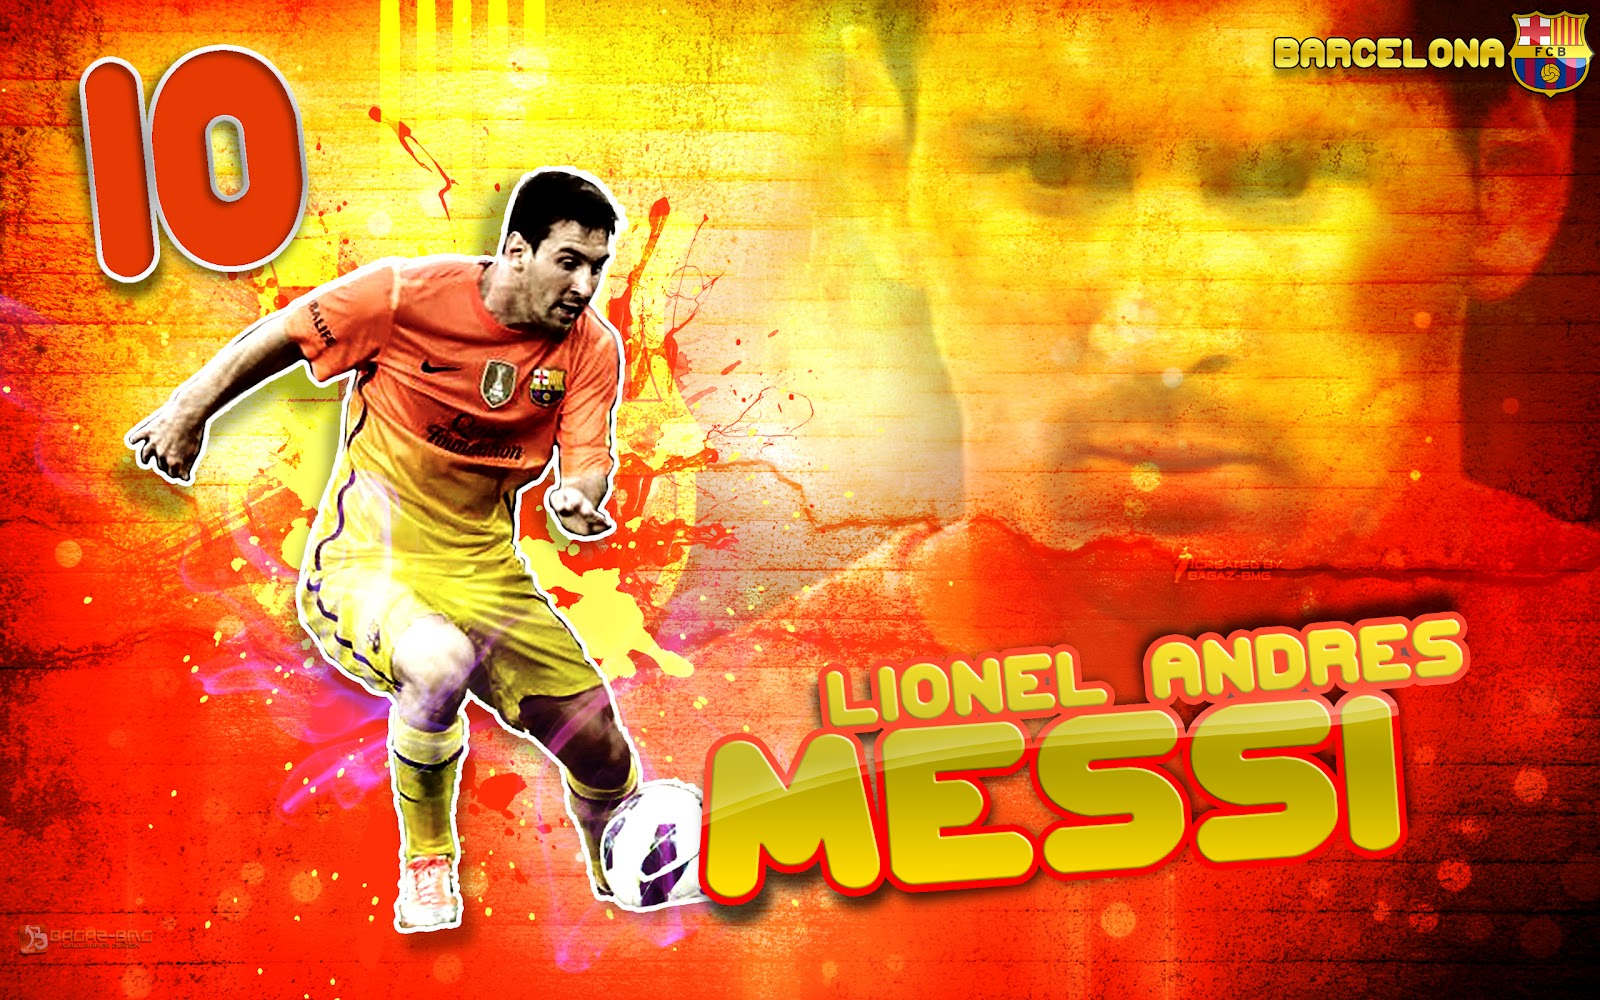 Wallpaper Lionel Andres Messi 2013 picture wallpaper image